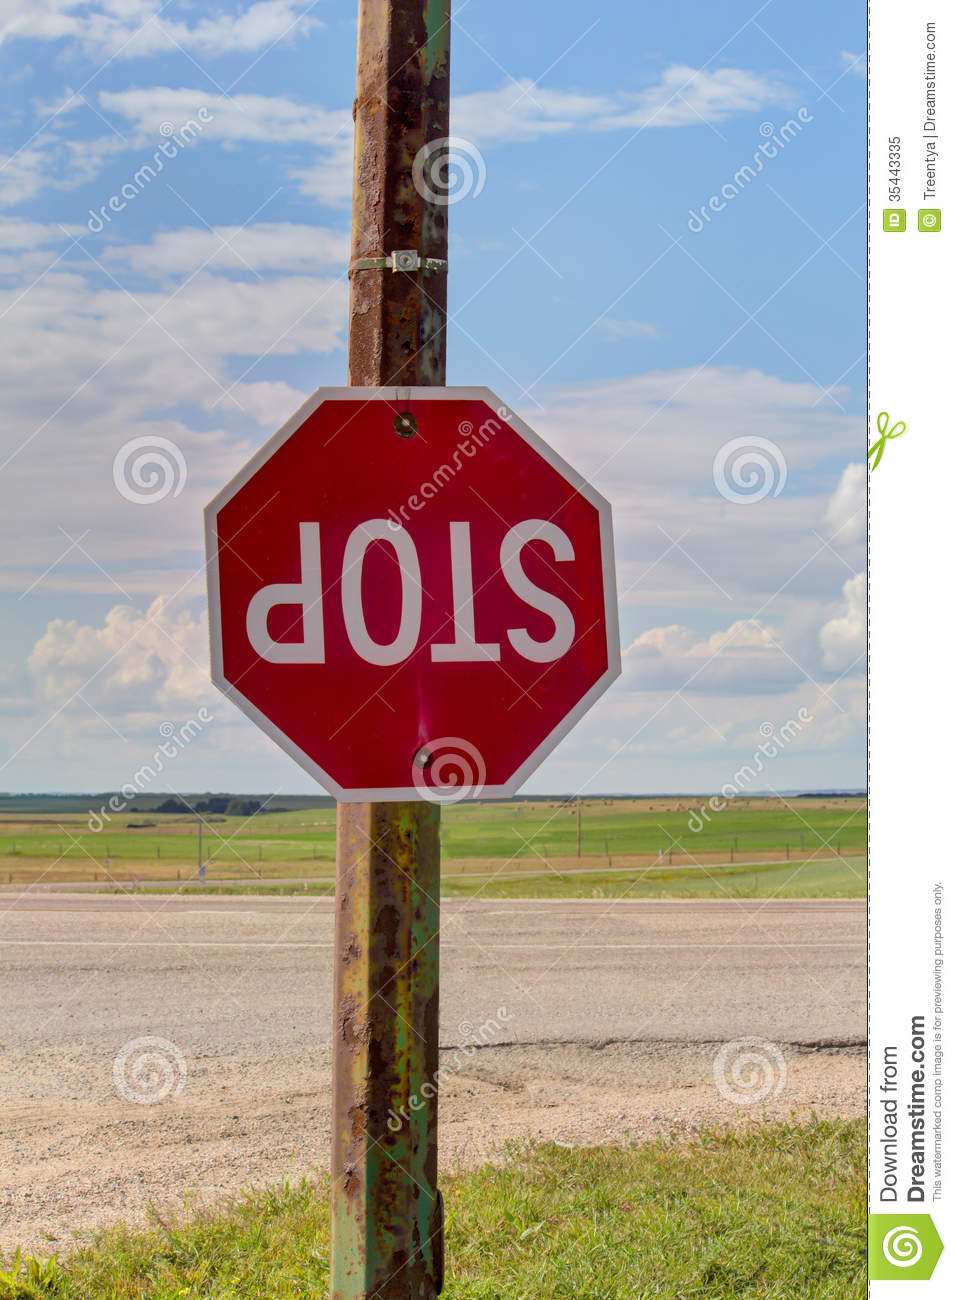 Time Road Id Roblox: Road Sign Stock Image. Image Of Clouds, Road, Hexagon